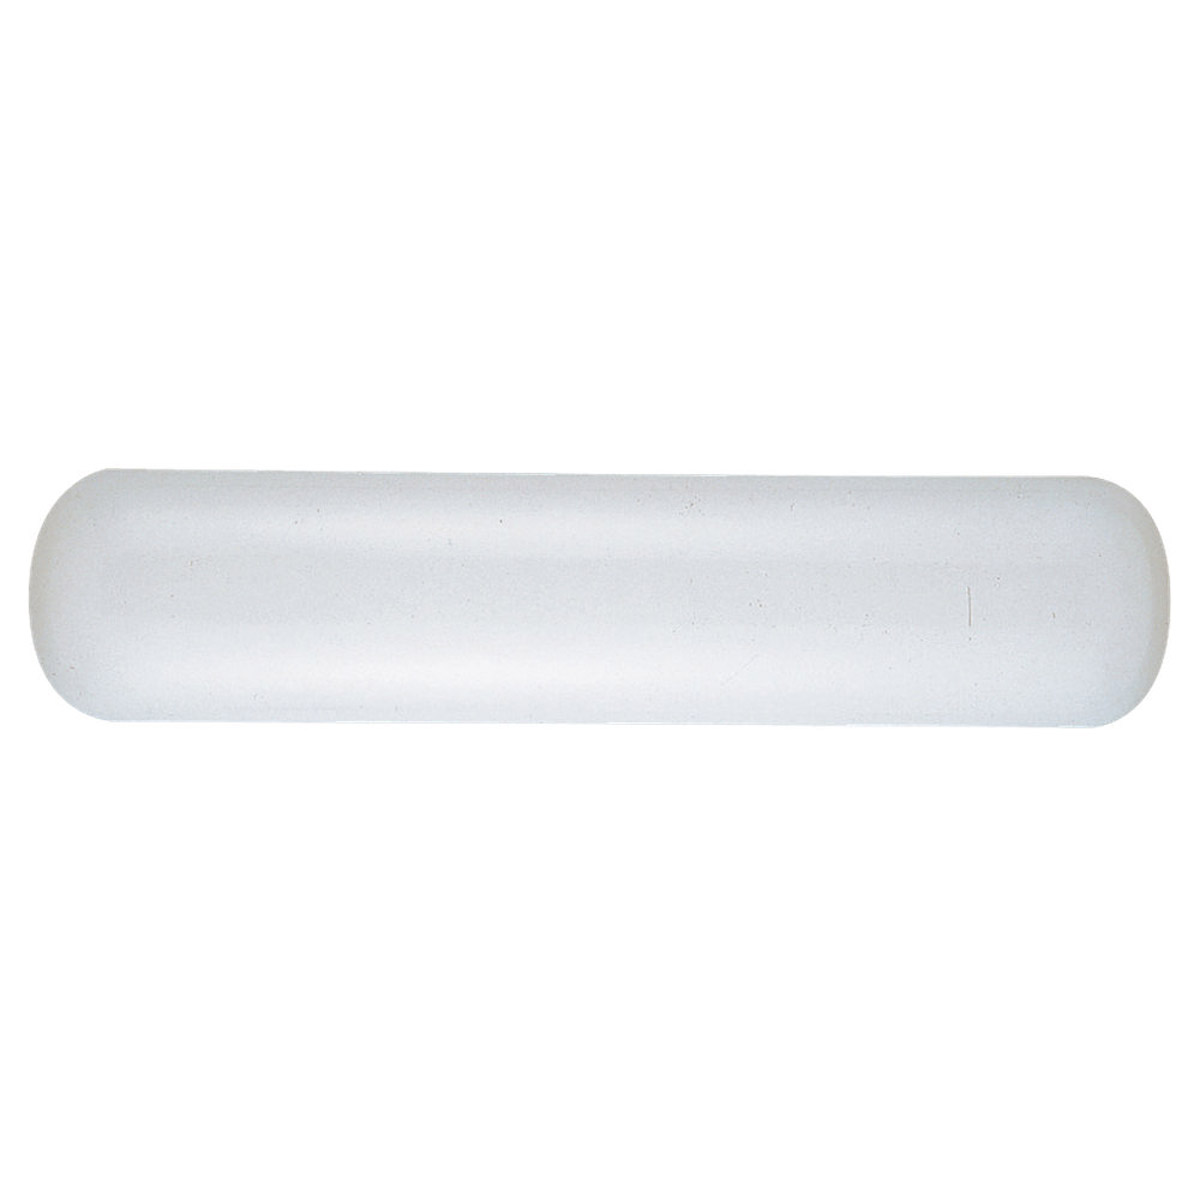 Sea Gull 4908LE-68 Pillow Lens Fluorescent 2 Light 27 inch White Plastic Wall Sconce Wall Light in 26.75